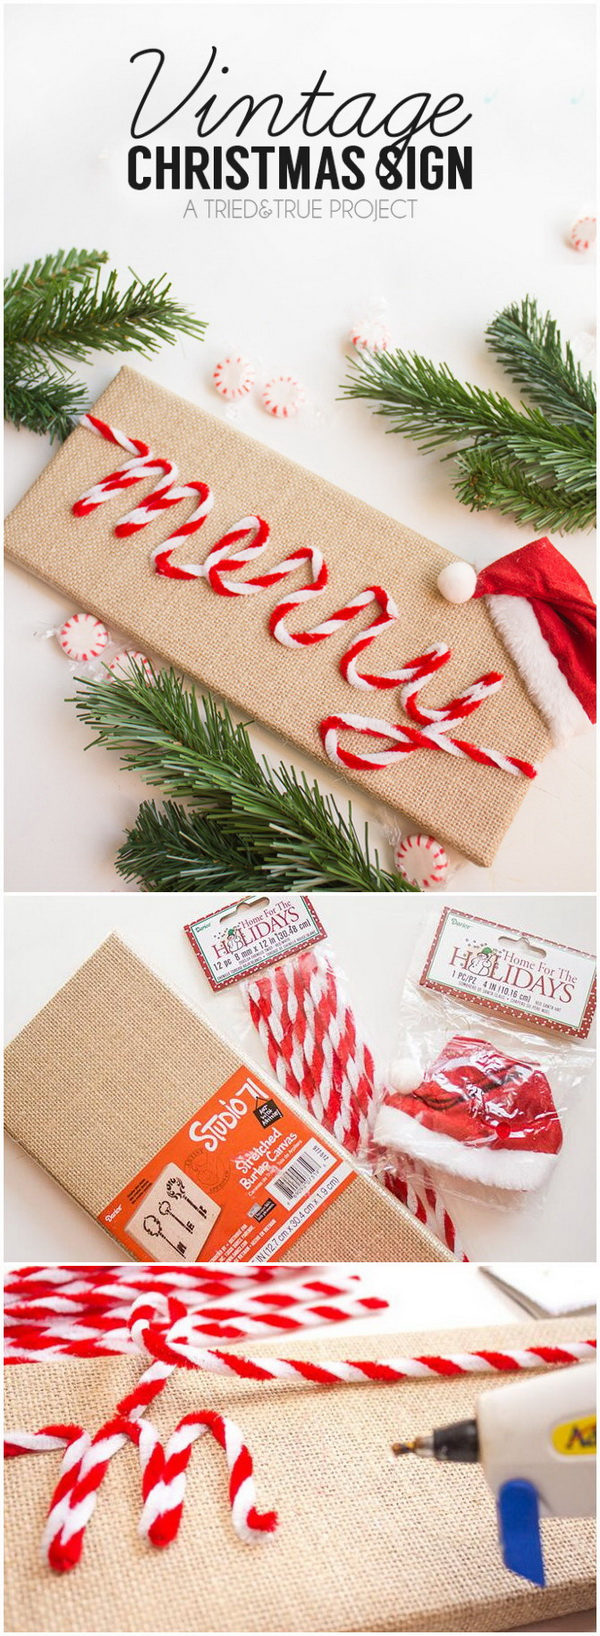 "Make your home look festive for less this holiday season with easy DIY dollar store Christmas decor ideas. Wreaths, candles, centerpieces, wall art, ornaments, vases, gifts and more! ""Merry"" Vintage Christmas Sign."